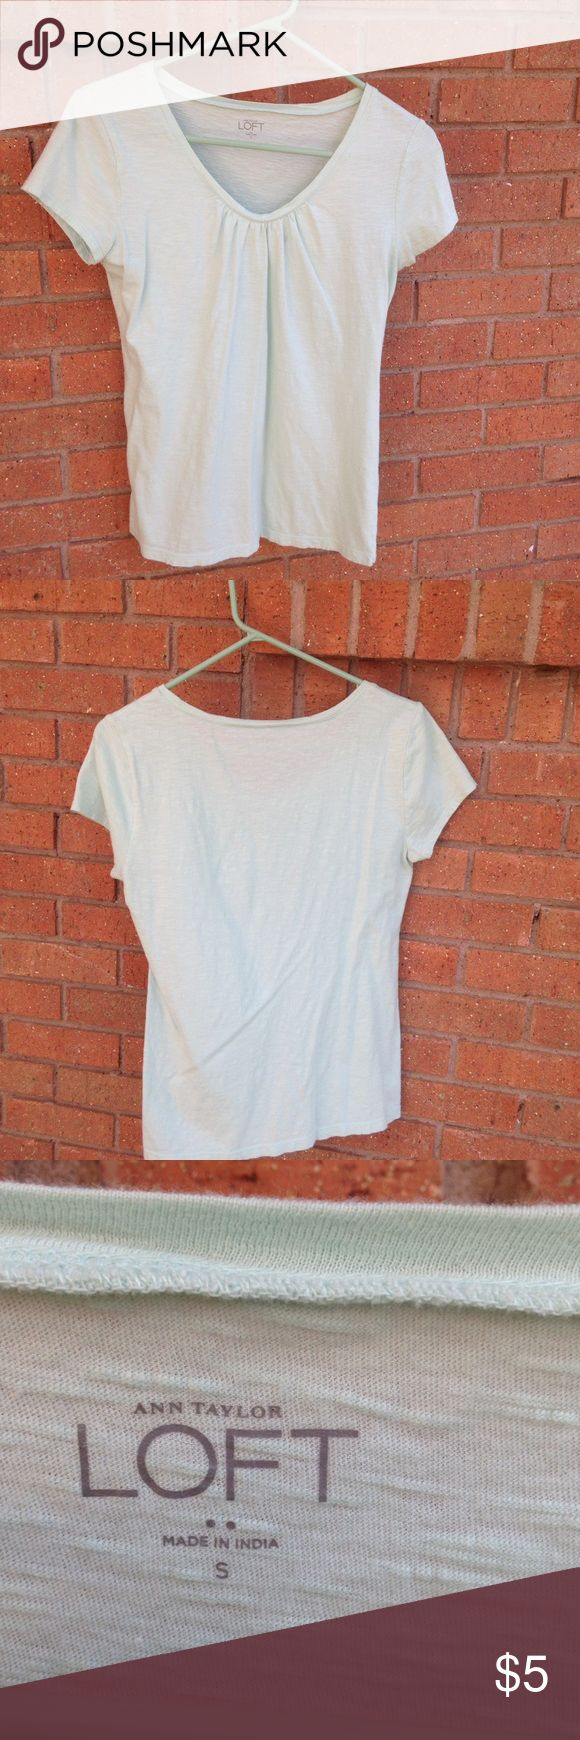 Mint Scoopneck Top Scoopneck mint colored top for Ann Taylor Loft factory store. This is gently worn, and good condition. No trades, but offers are welcome. ❤ LOFT Tops Tees - Short Sleeve